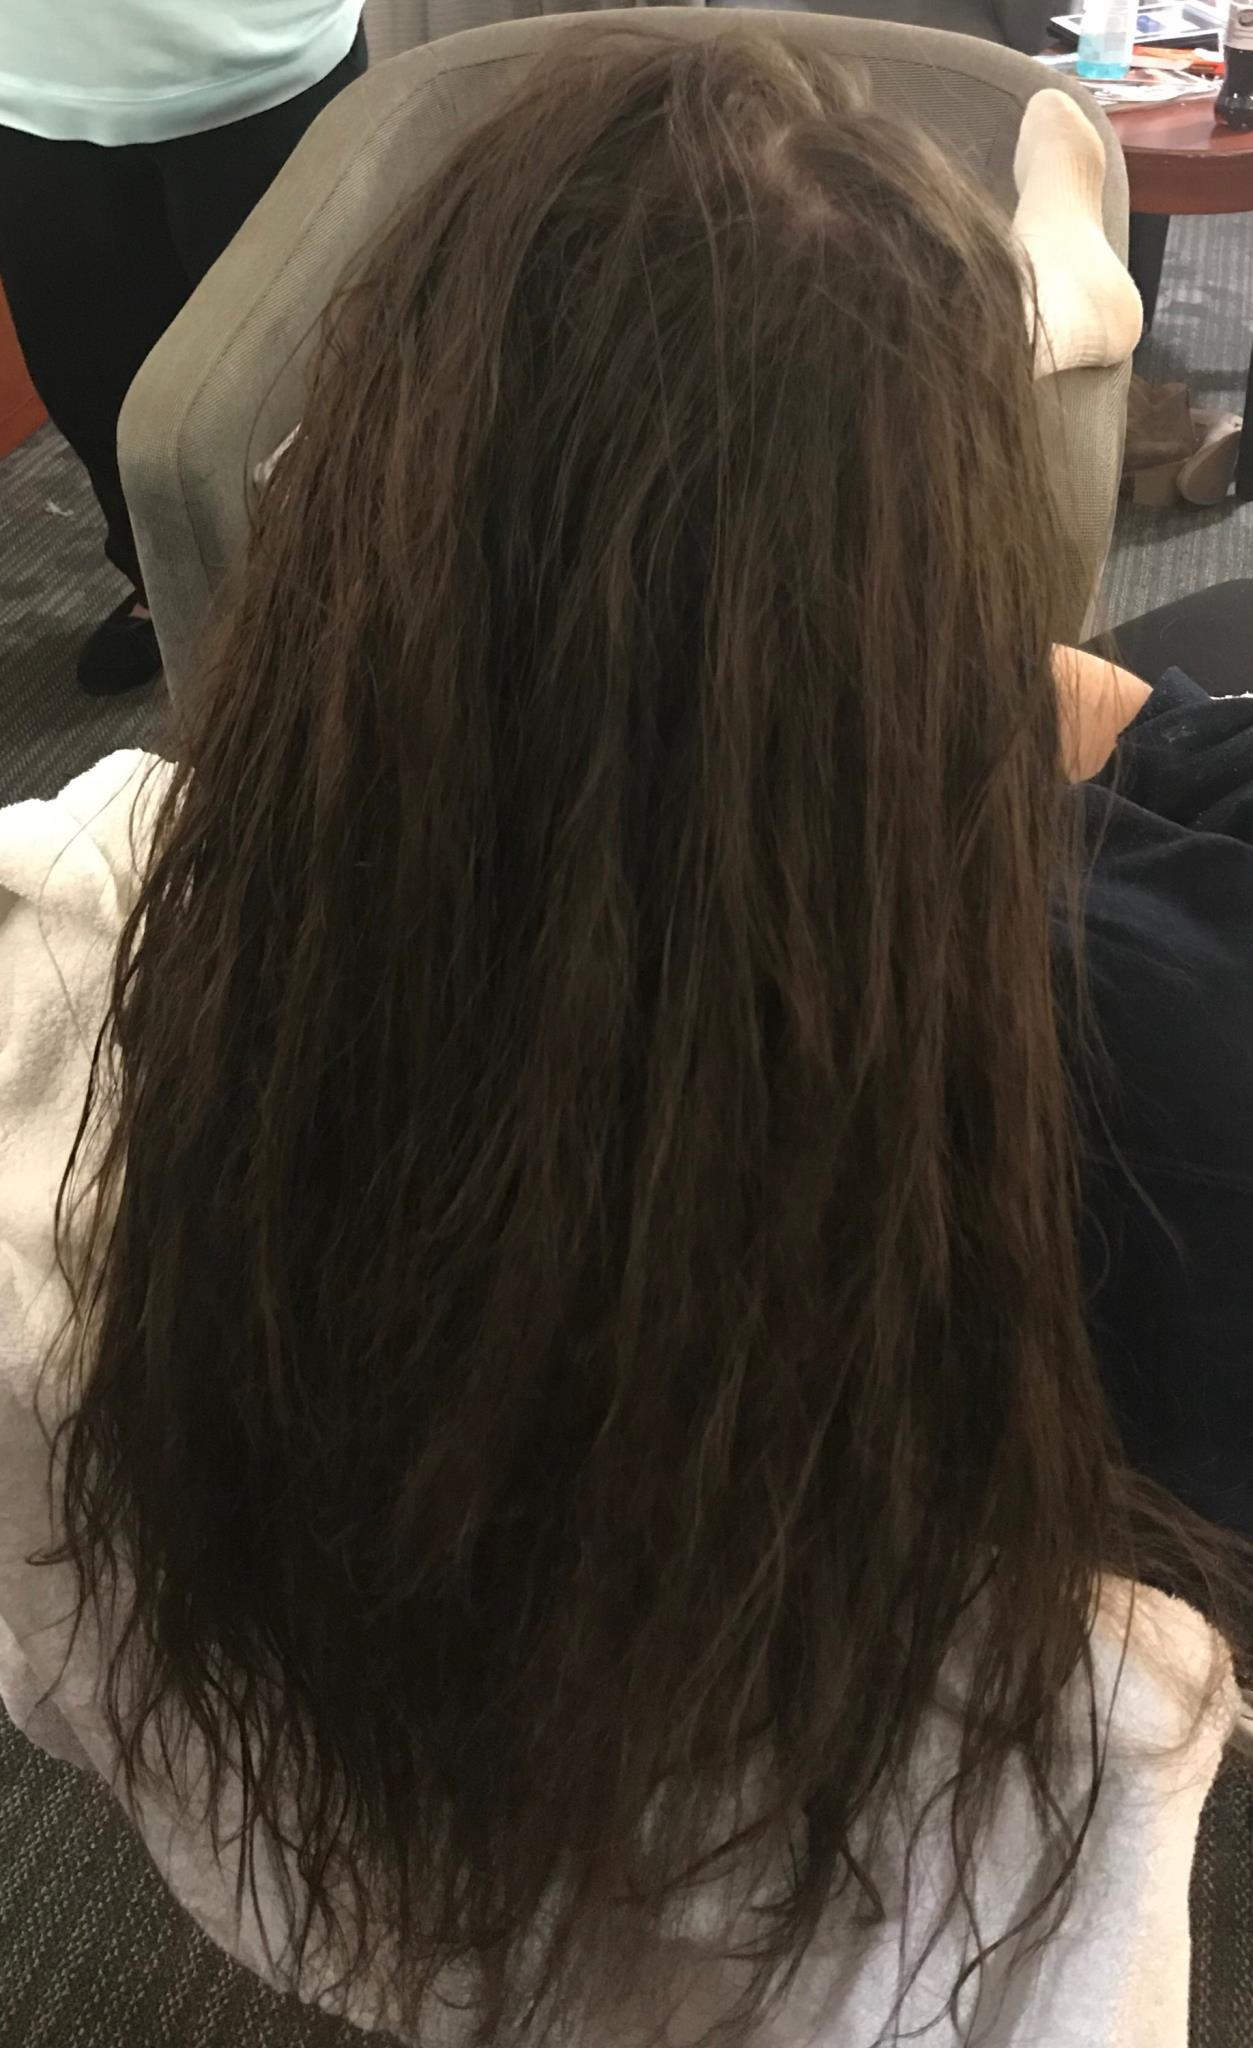 DO NOT CUT YOUR HAIR! You Are Attached To Your Hair